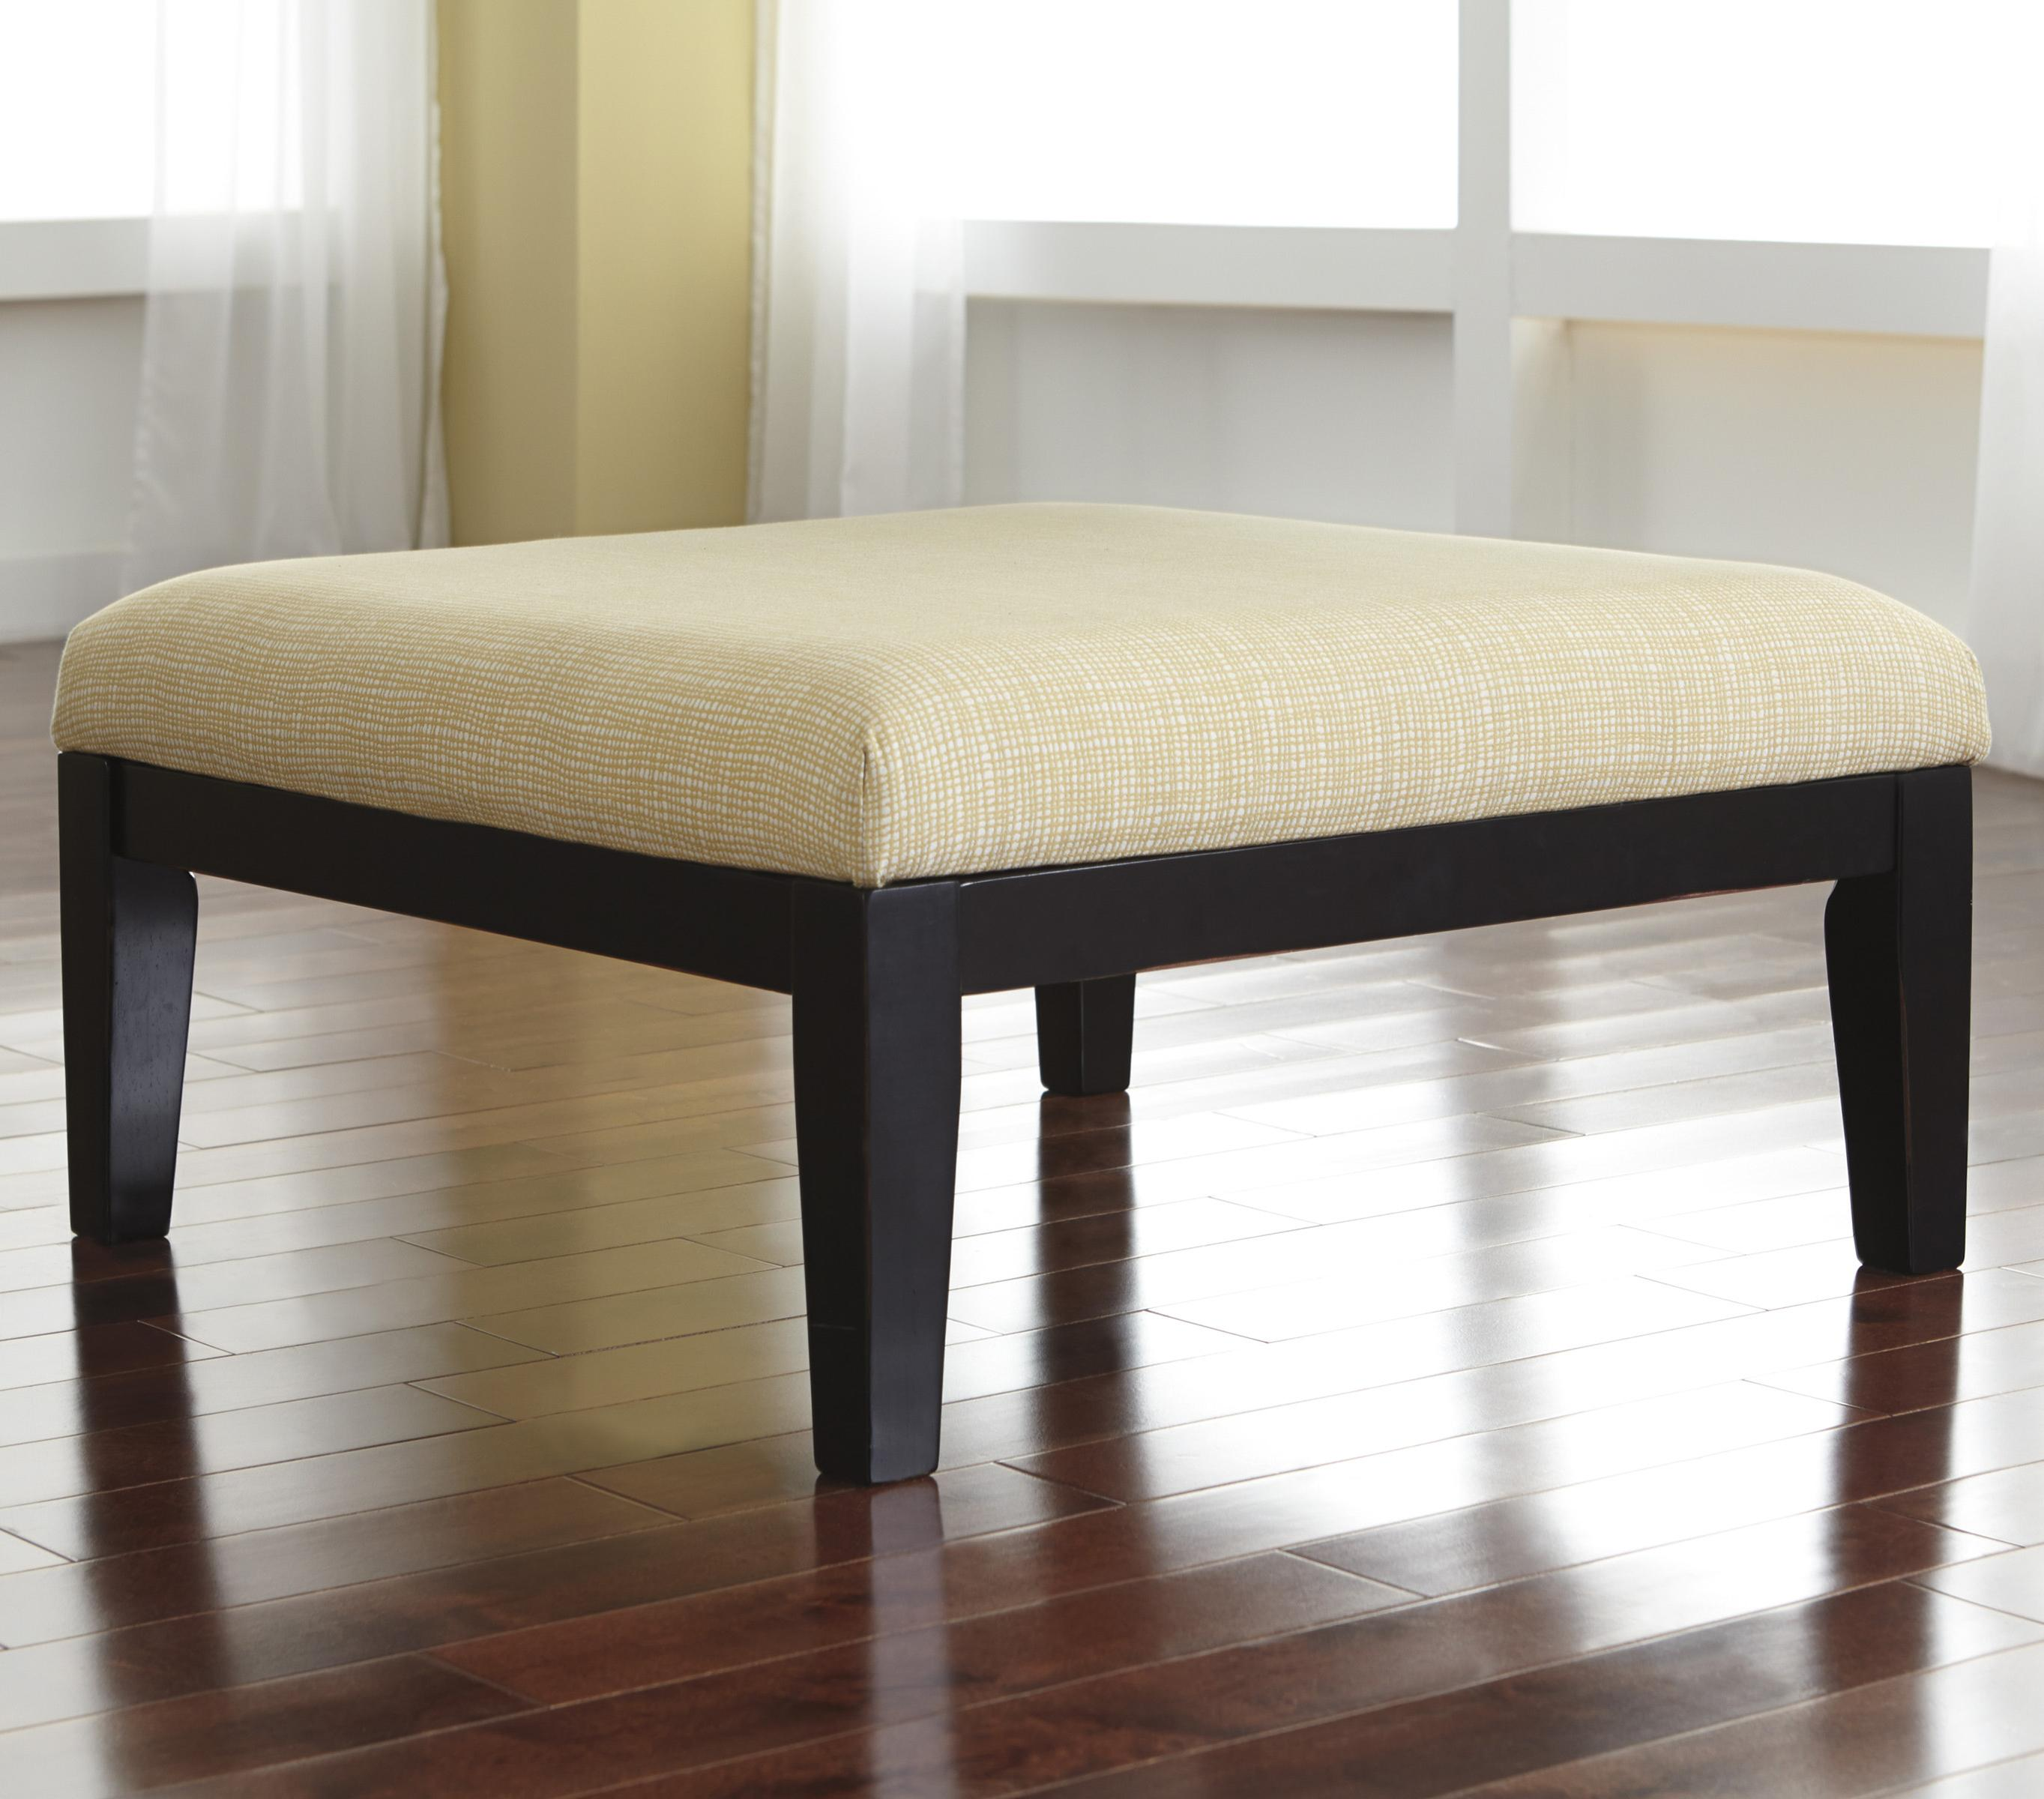 Signature Design by Ashley Chamberly - Alloy Oversized Accent Ottoman - Item Number: 2430208